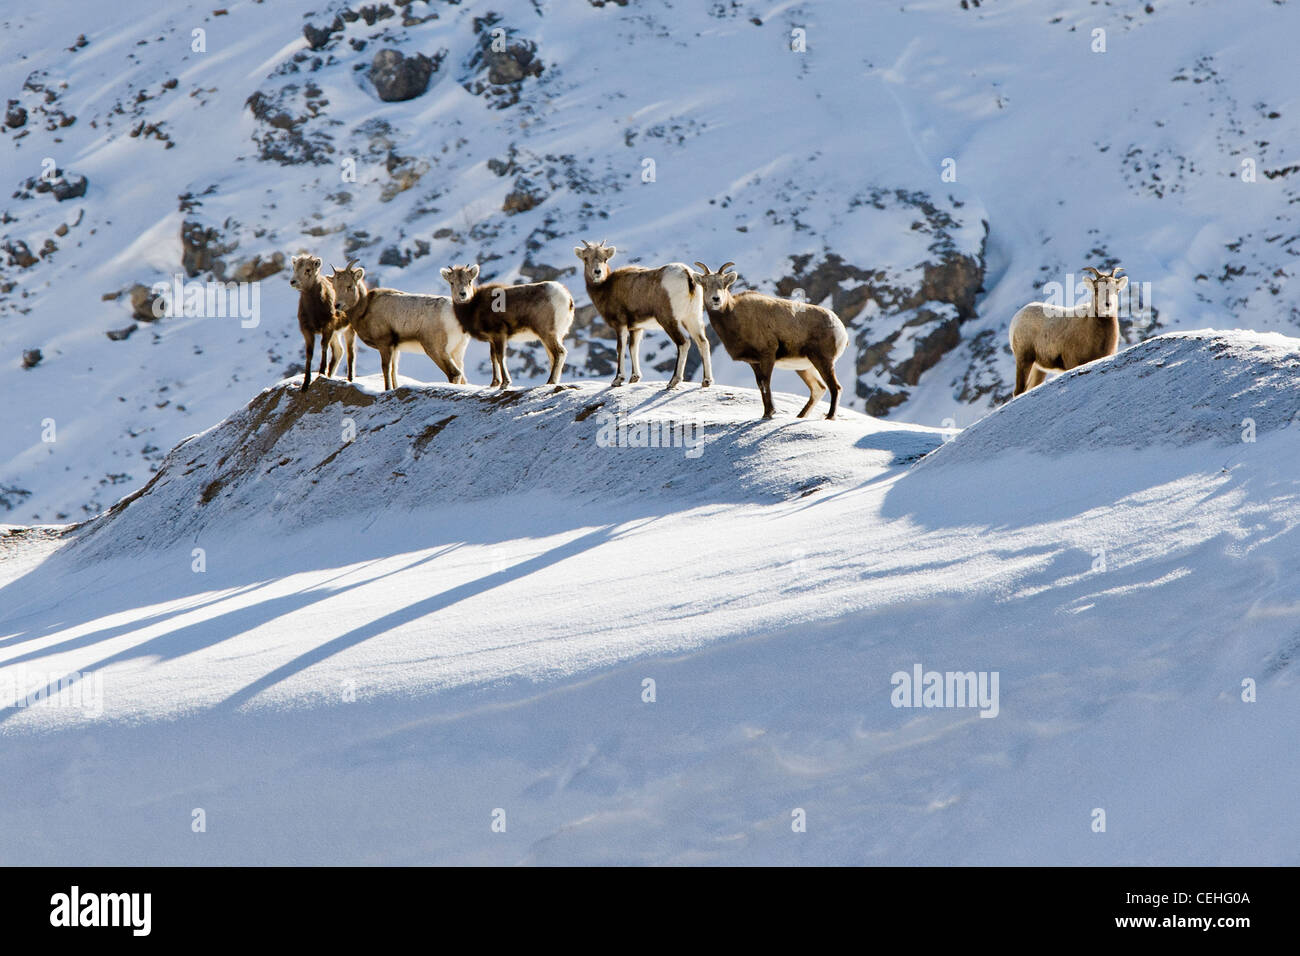 Le mouflon des montagnes, Ovis canadensis, en hiver, Monarch Pass, Colorado, USA Photo Stock